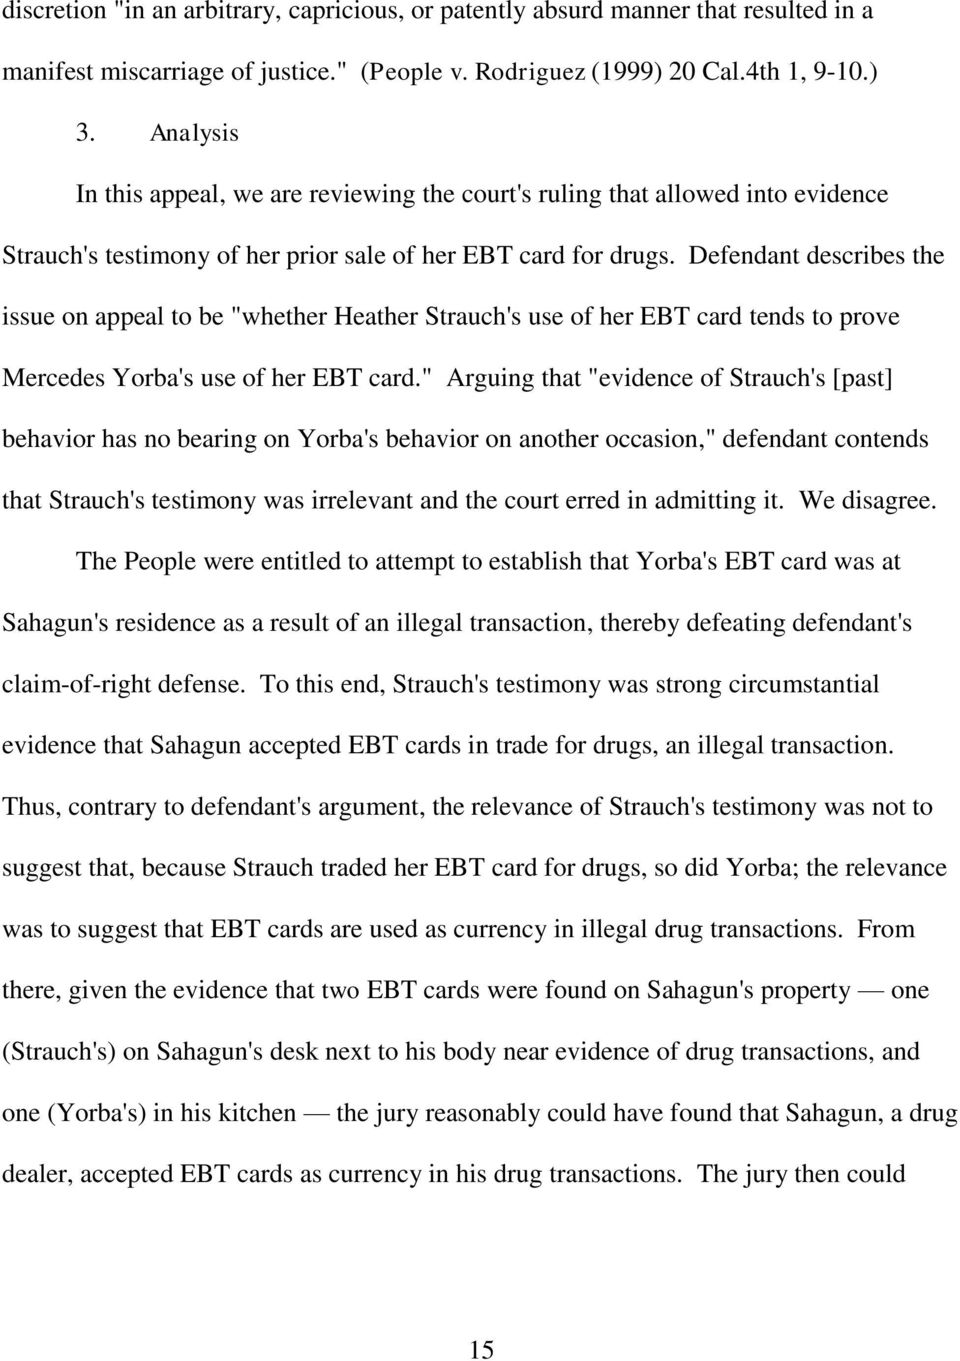 "Defendant describes the issue on appeal to be ""whether Heather Strauch's use of her EBT card tends to prove Mercedes Yorba's use of her EBT card."